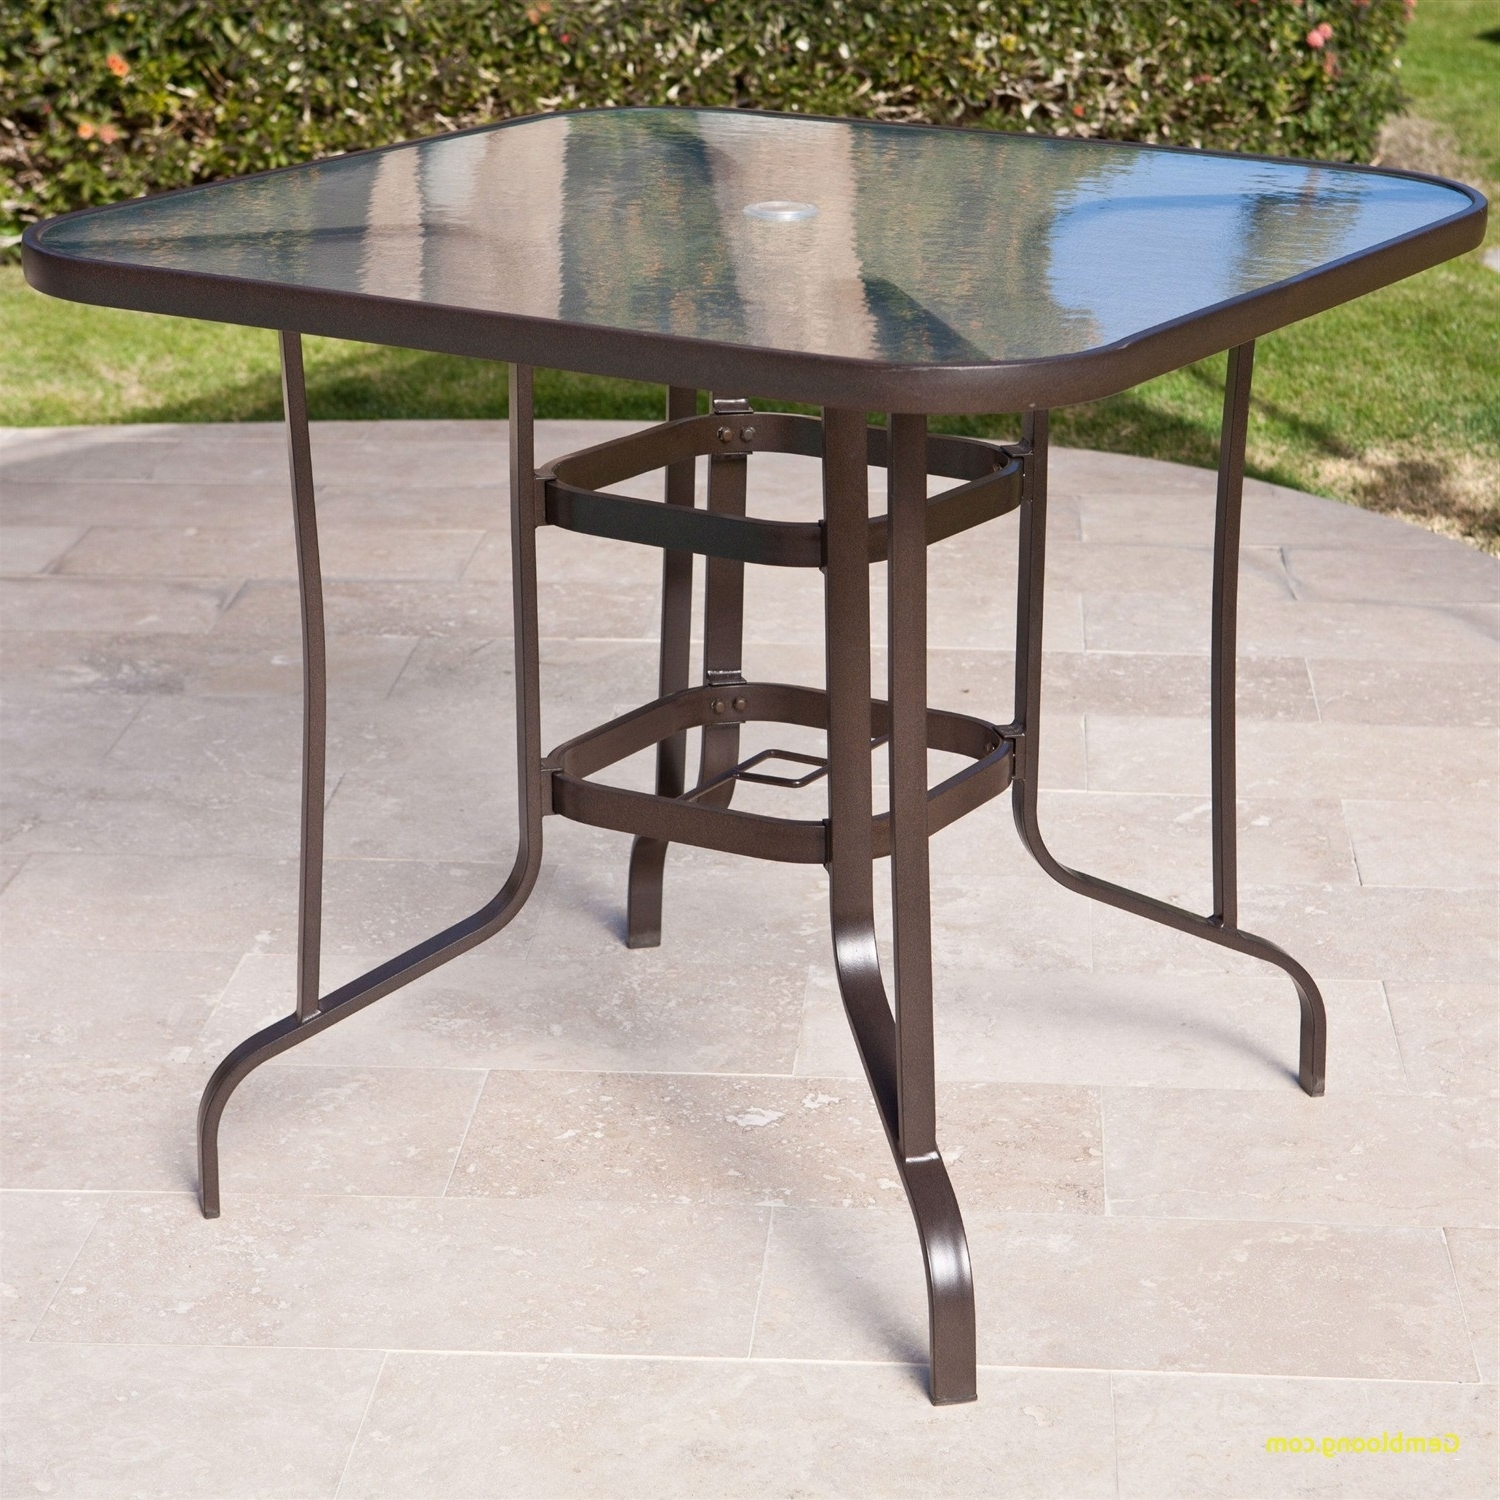 Recent Patio Table With Umbrella Hole – Pelikansurf For Patio Tables With Umbrella Hole (Gallery 6 of 20)